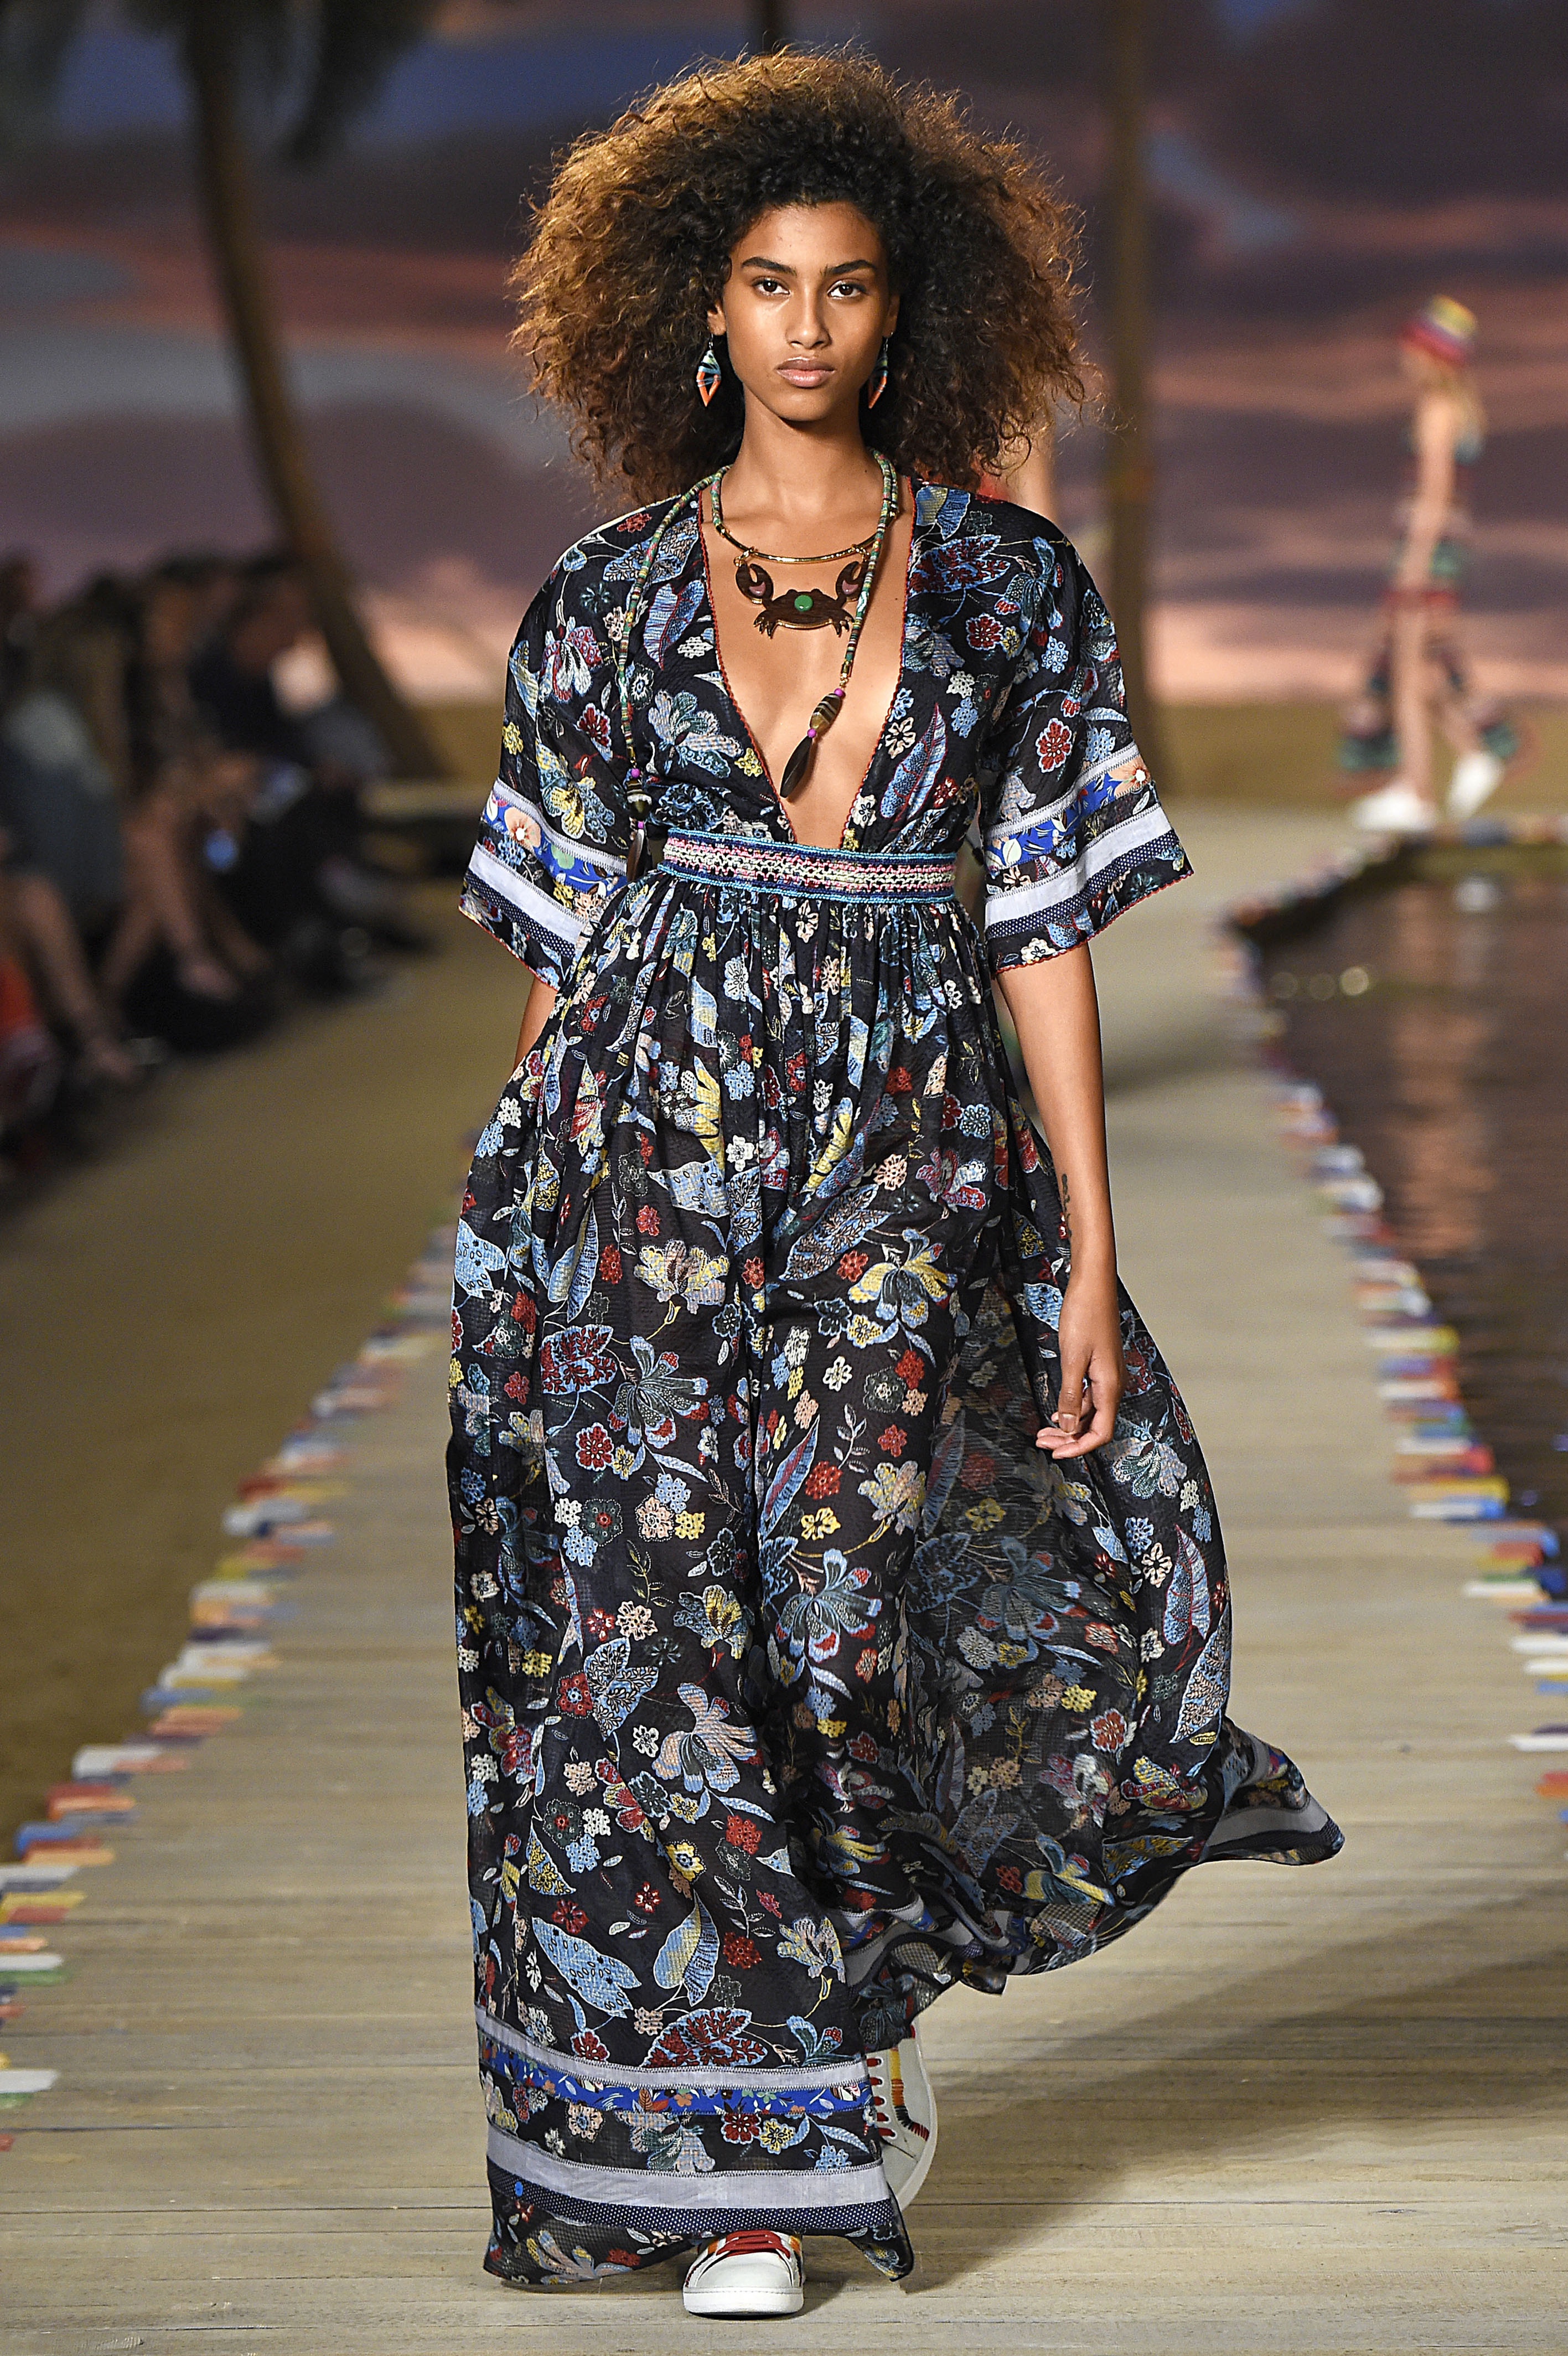 5 Fast Facts About Hot Model Imaan Hammam